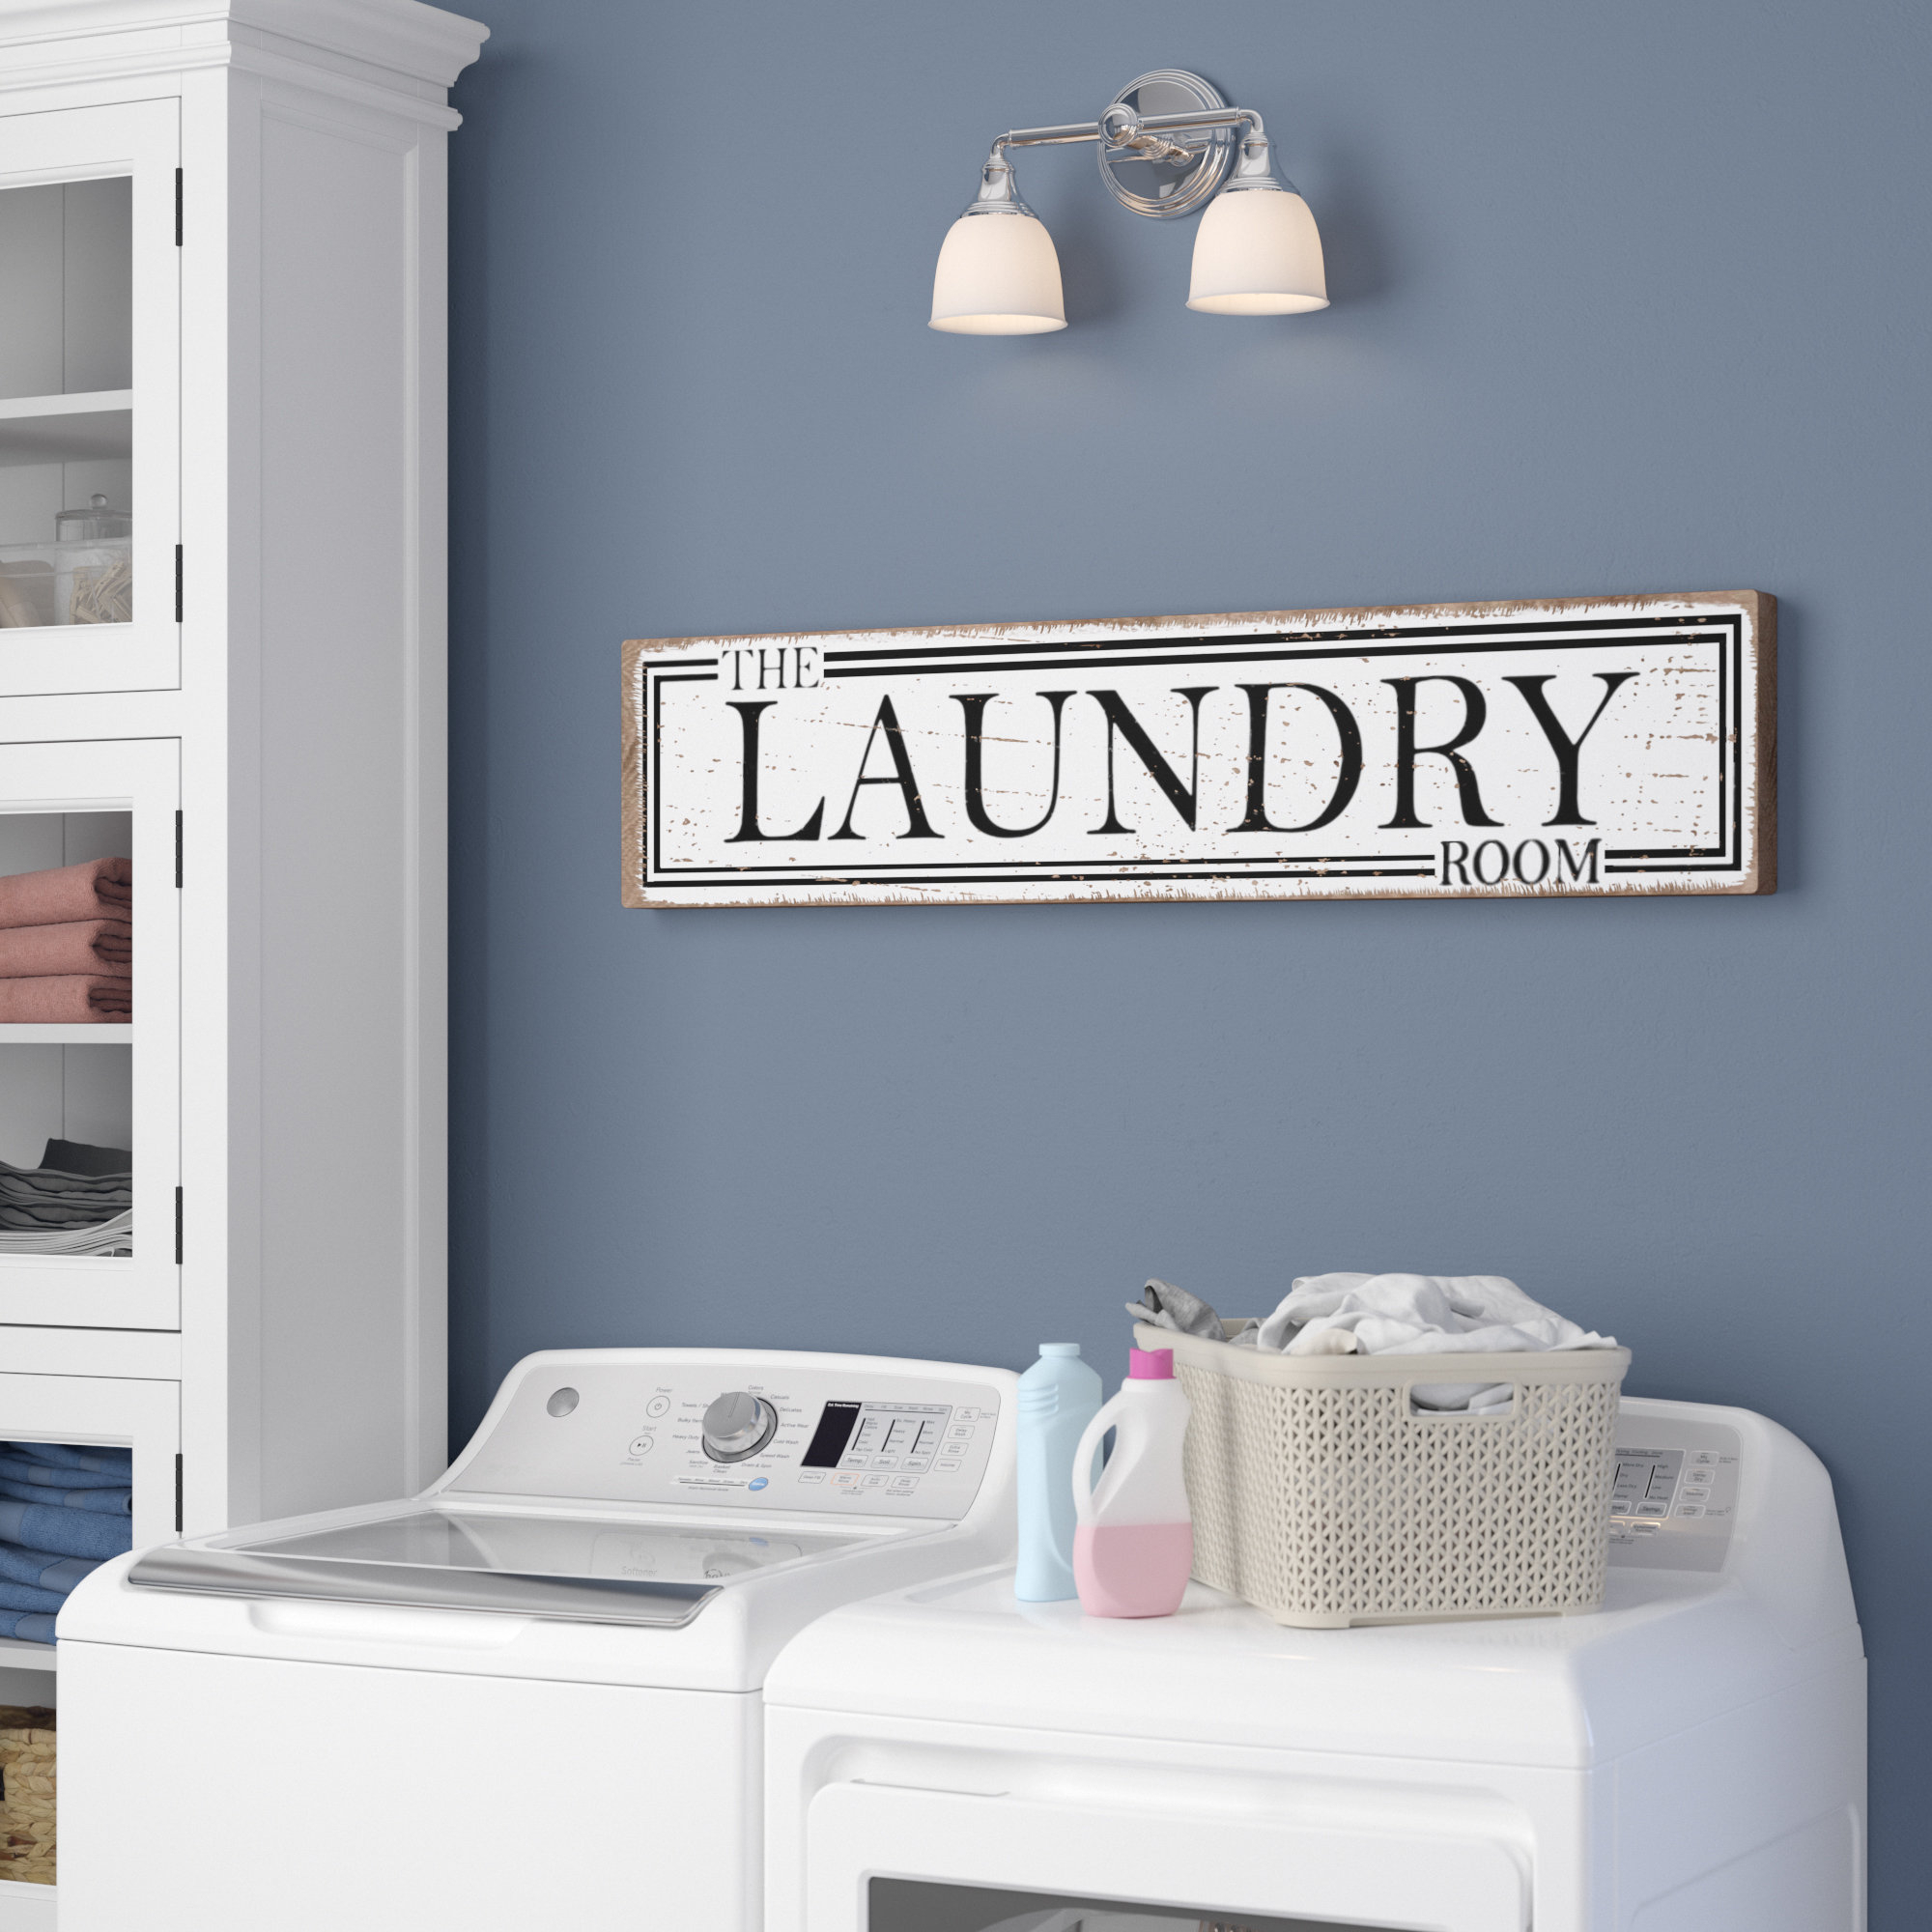 The Laundry Room Wall Décor with regard to Sign Wall Decor by Charlton Home (Image 28 of 30)